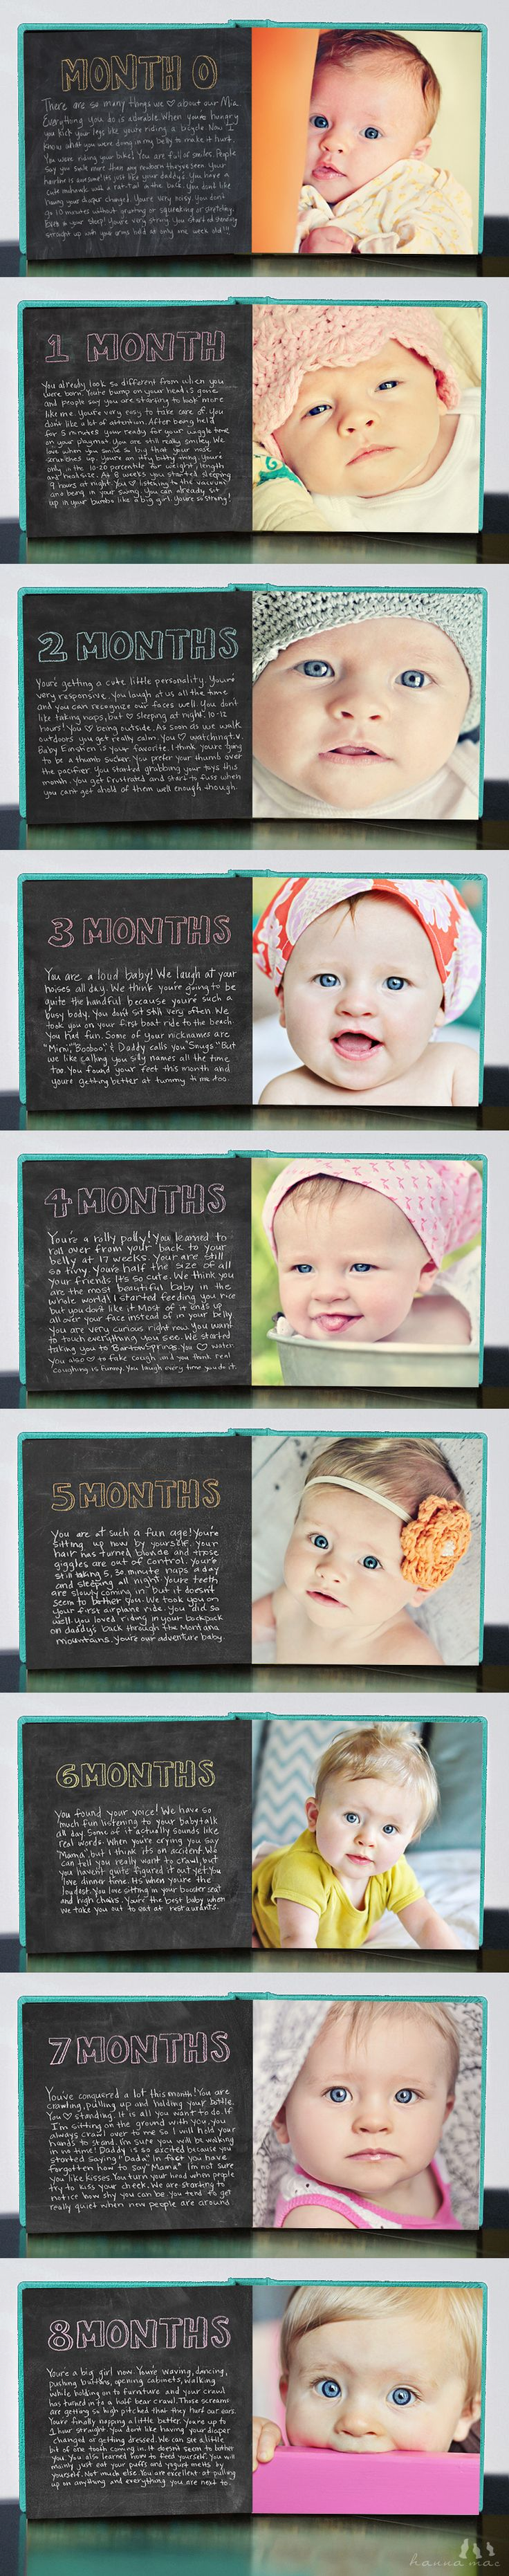 Baby Book - Love seeing how the baby grows and list what they are like and what changes as every month passes. So sweet. :)